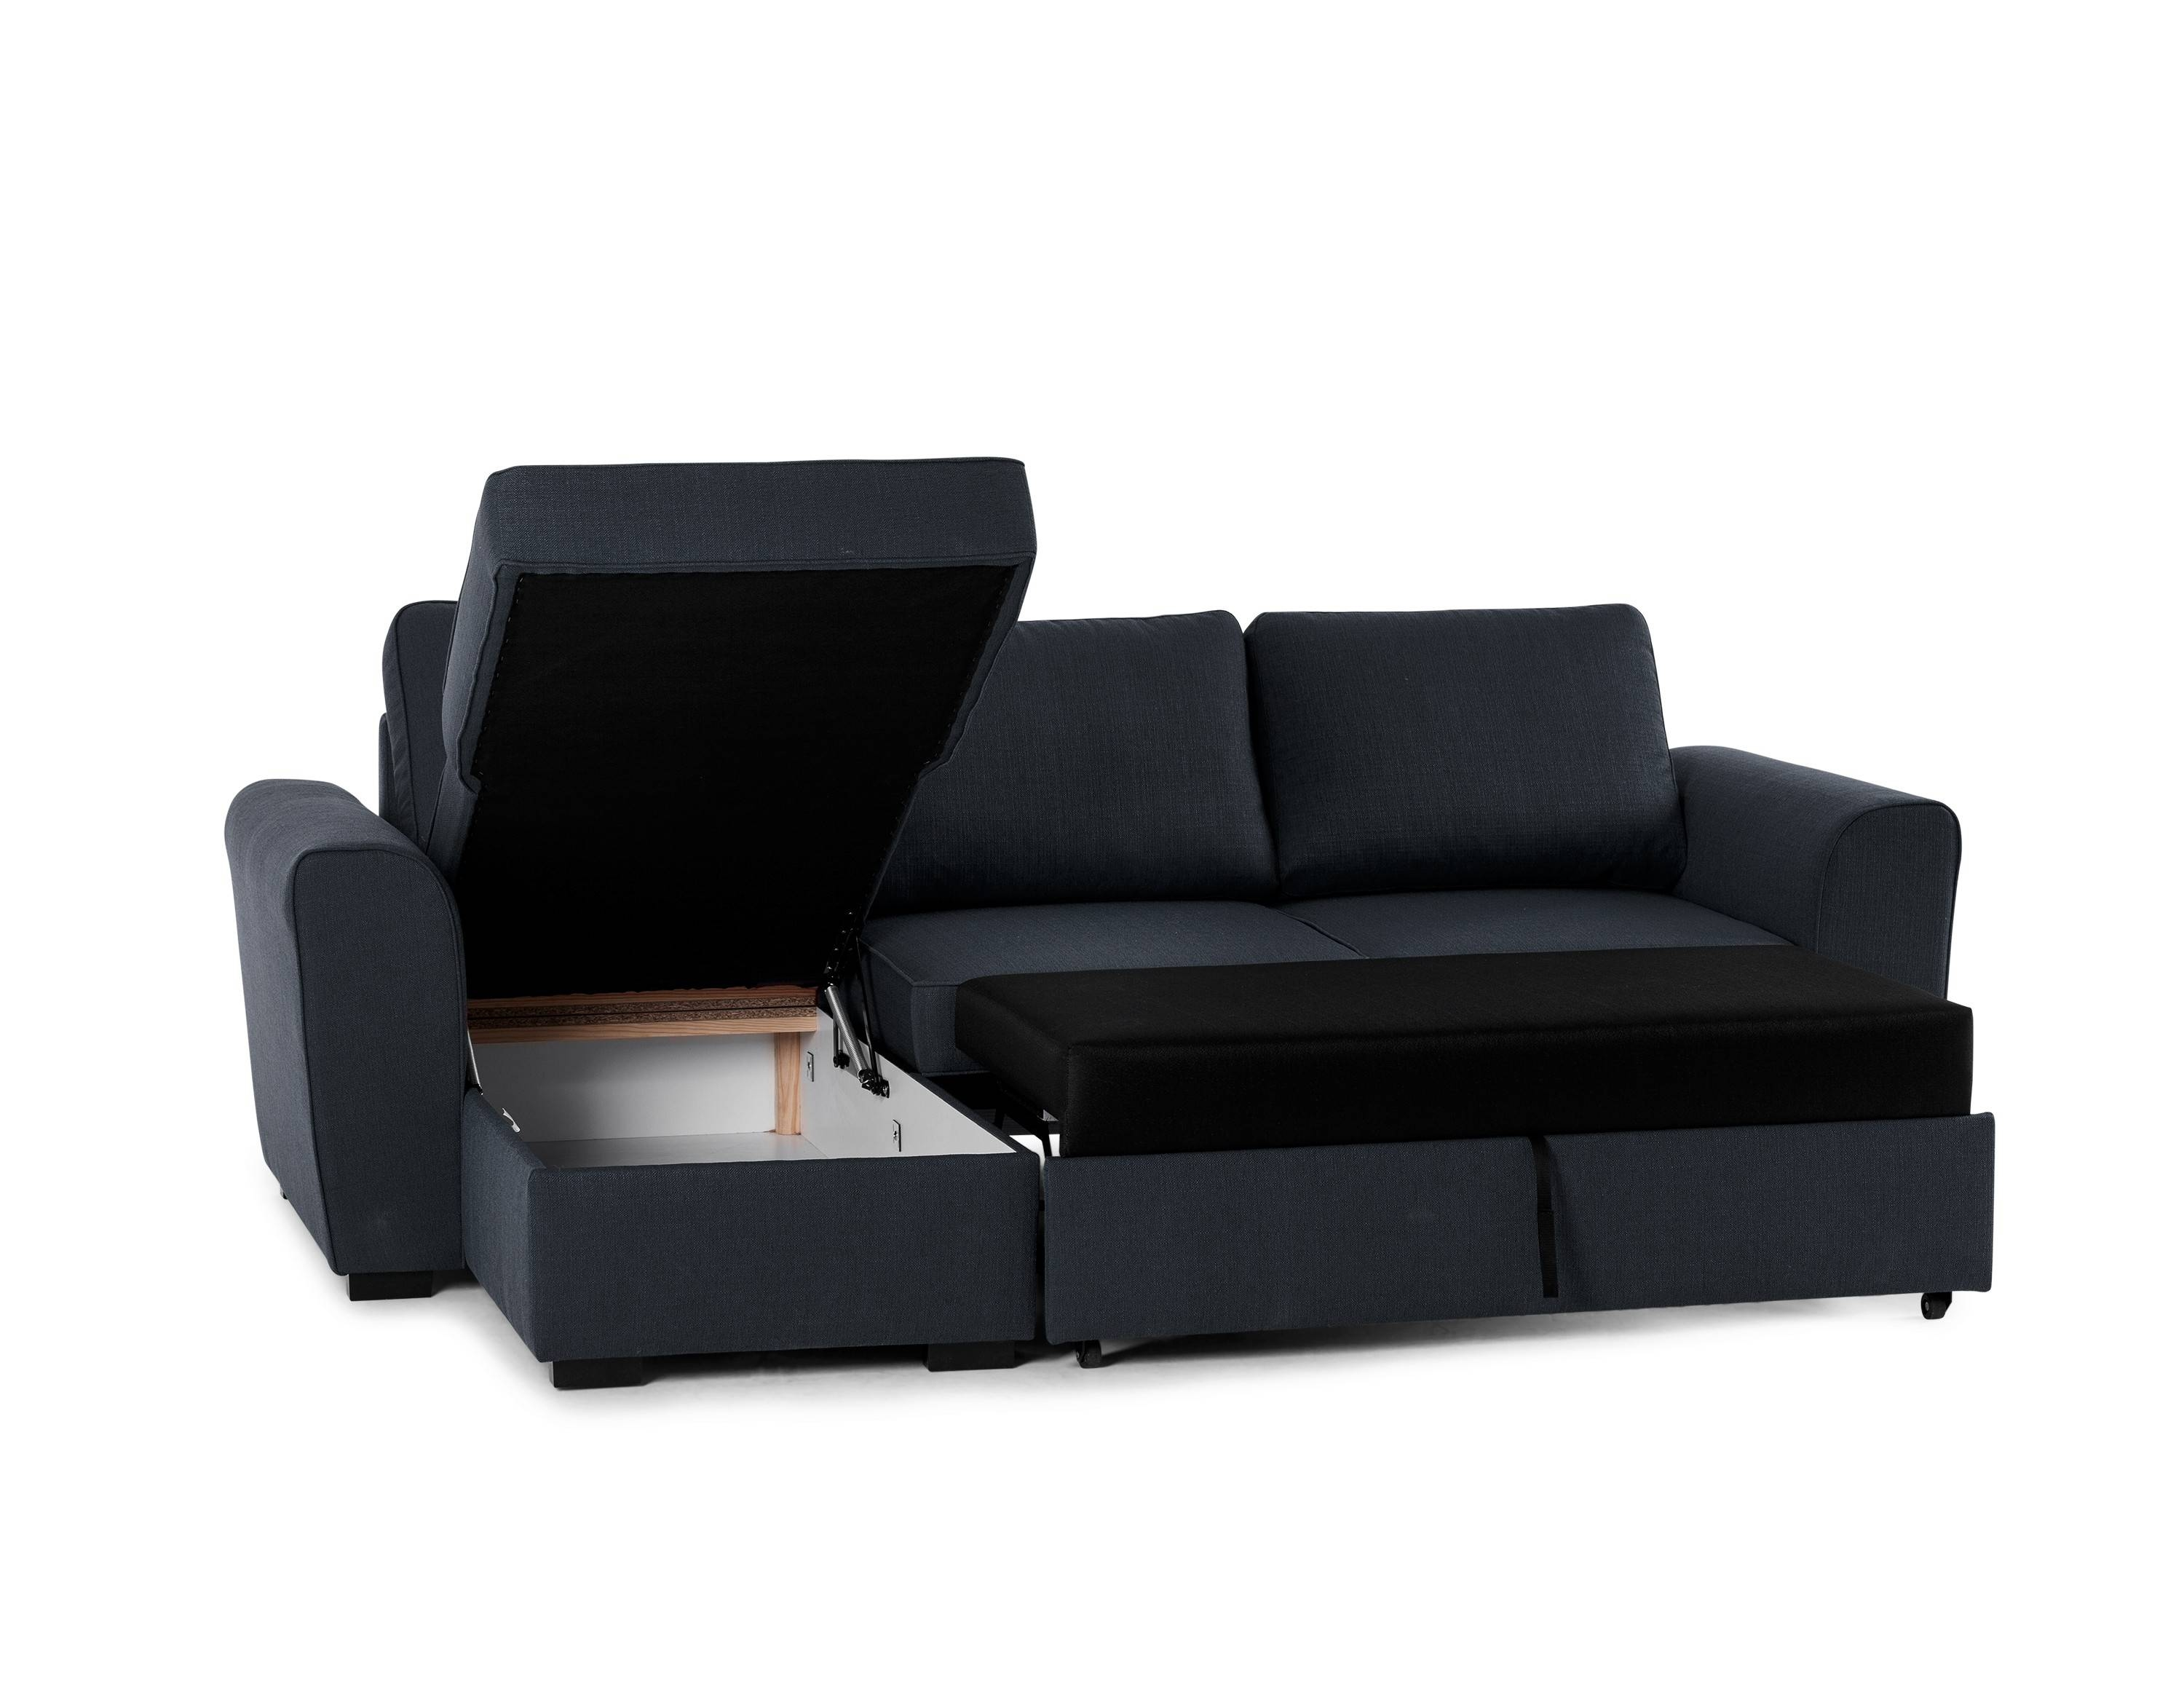 Sofa: Sears Sofabed | Ashley Loveseat Sleeper | Sears Sofa Bed inside Sears Sleeper Sofas (Image 15 of 15)